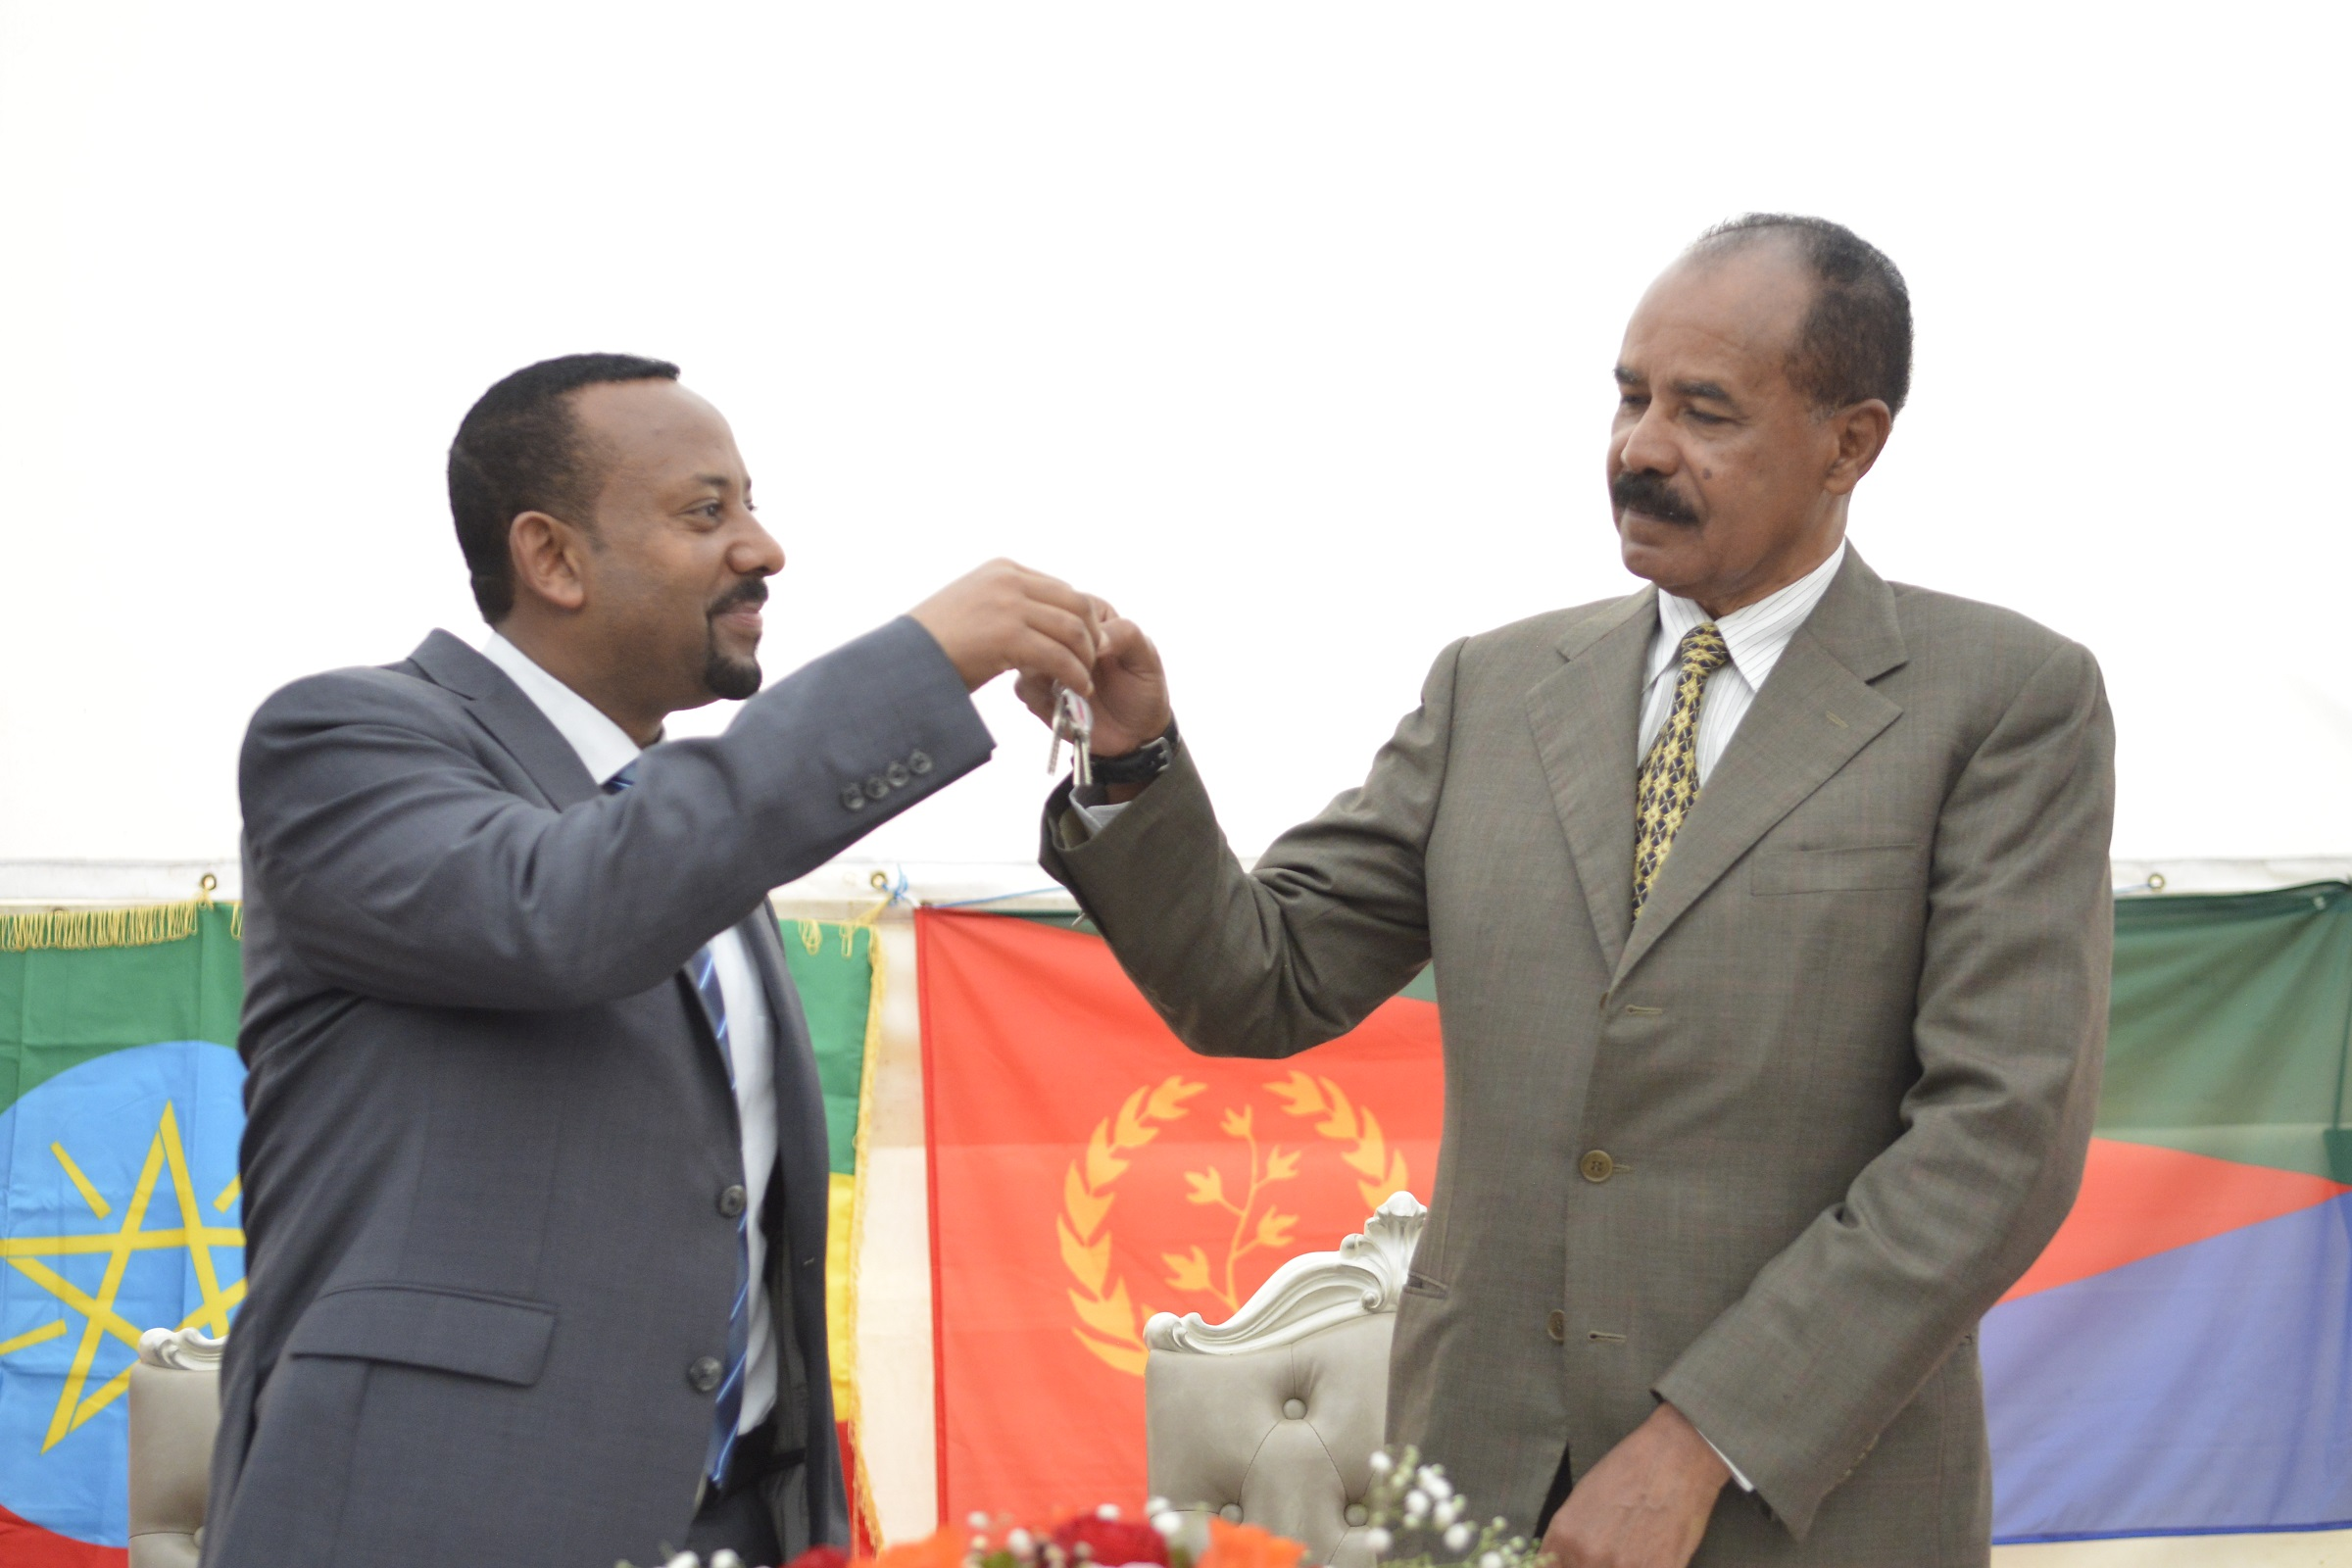 Ethiopia's Prime Minister Abiy Ahmed (L) and Eritrea's President Isaias Afwerki (R) attend the re-opening of the Eritrean embassy in the Ethiopian capital Addis Ababa, Ethiopia, in a brief ceremony 16 July 2018. The leaders declared their 'state of war' over one week ago and Isaias spent the weekend in Ethiopia. Eritrea reopened its embassy in Ethiopia 16 July in further evidence of a rapid thaw between two countries that a week ago ended two decades of military stalemate over a border war in which tens of thousands died.